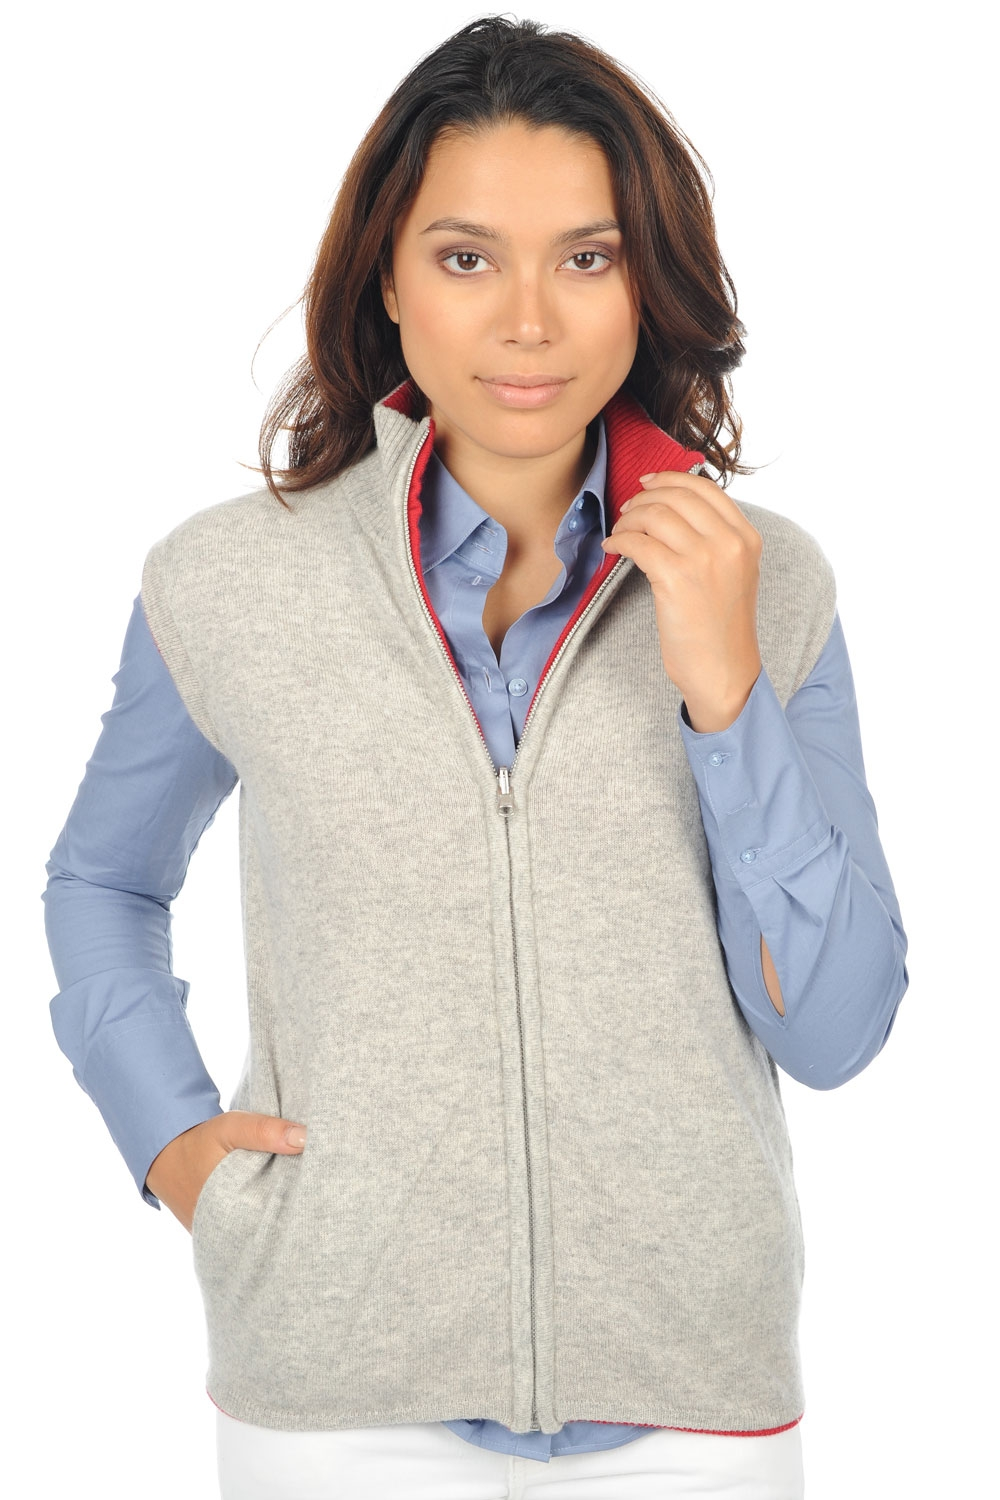 cashmere ladies cardigans alana flanelle chine blood red s